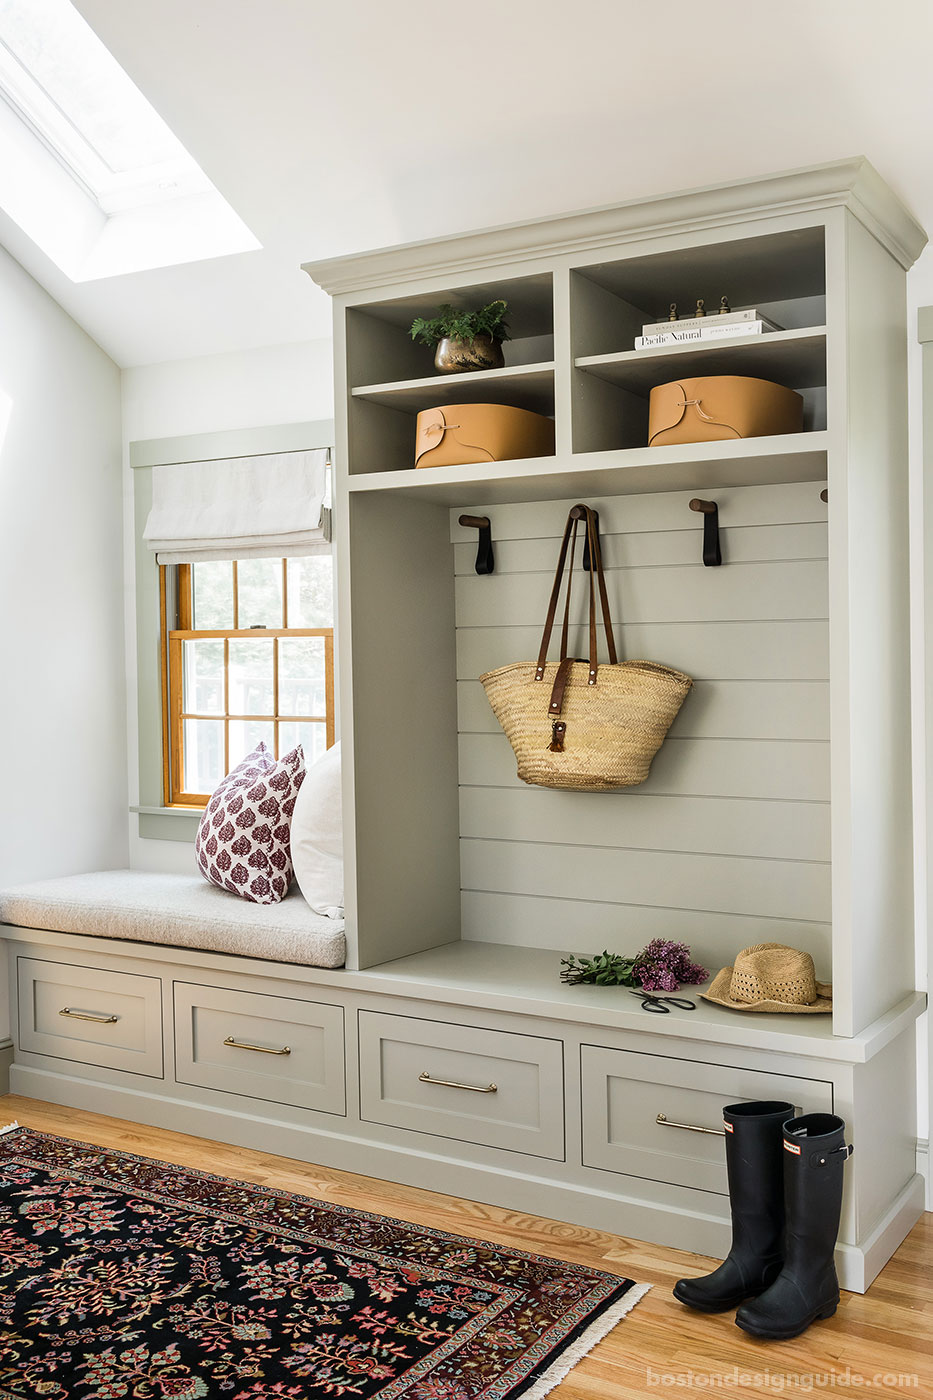 Renovated mudroom with nickel gap custom cabinetry by Mackenzie & Co.